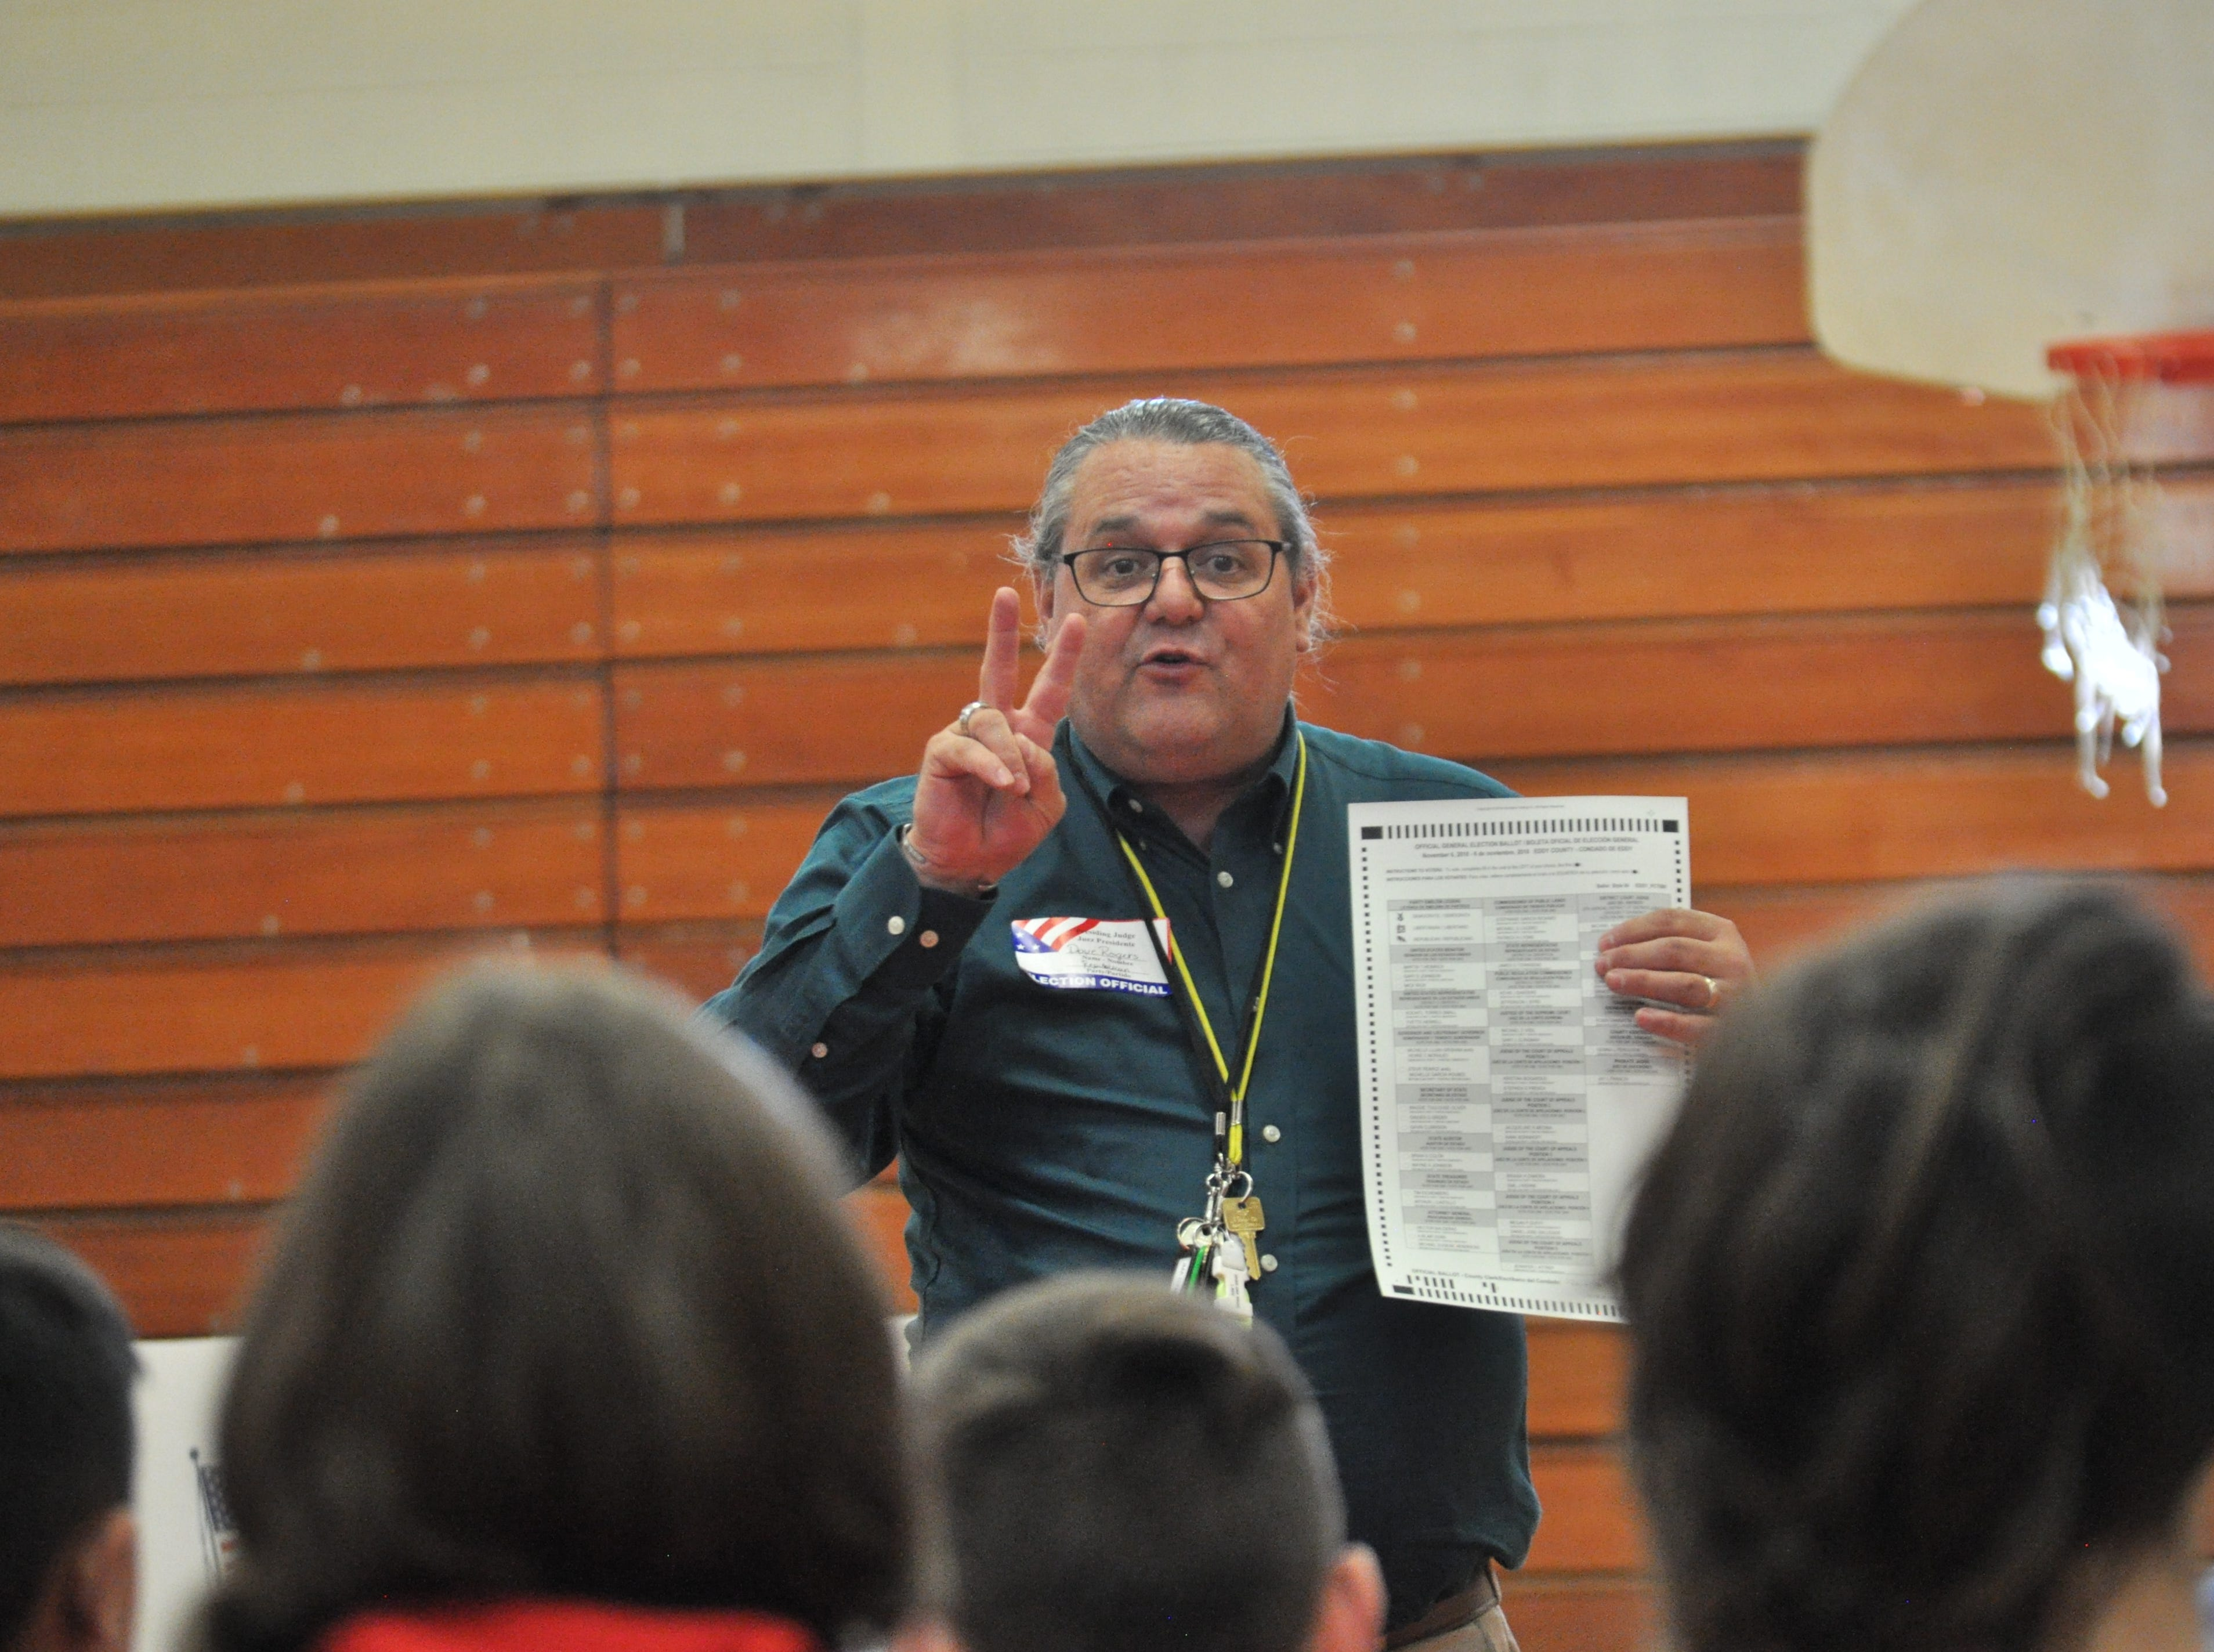 The Rev. Dave Rogers speaks to students about voting, Nov. 6, 2018 at Jefferson Montessori Academy.